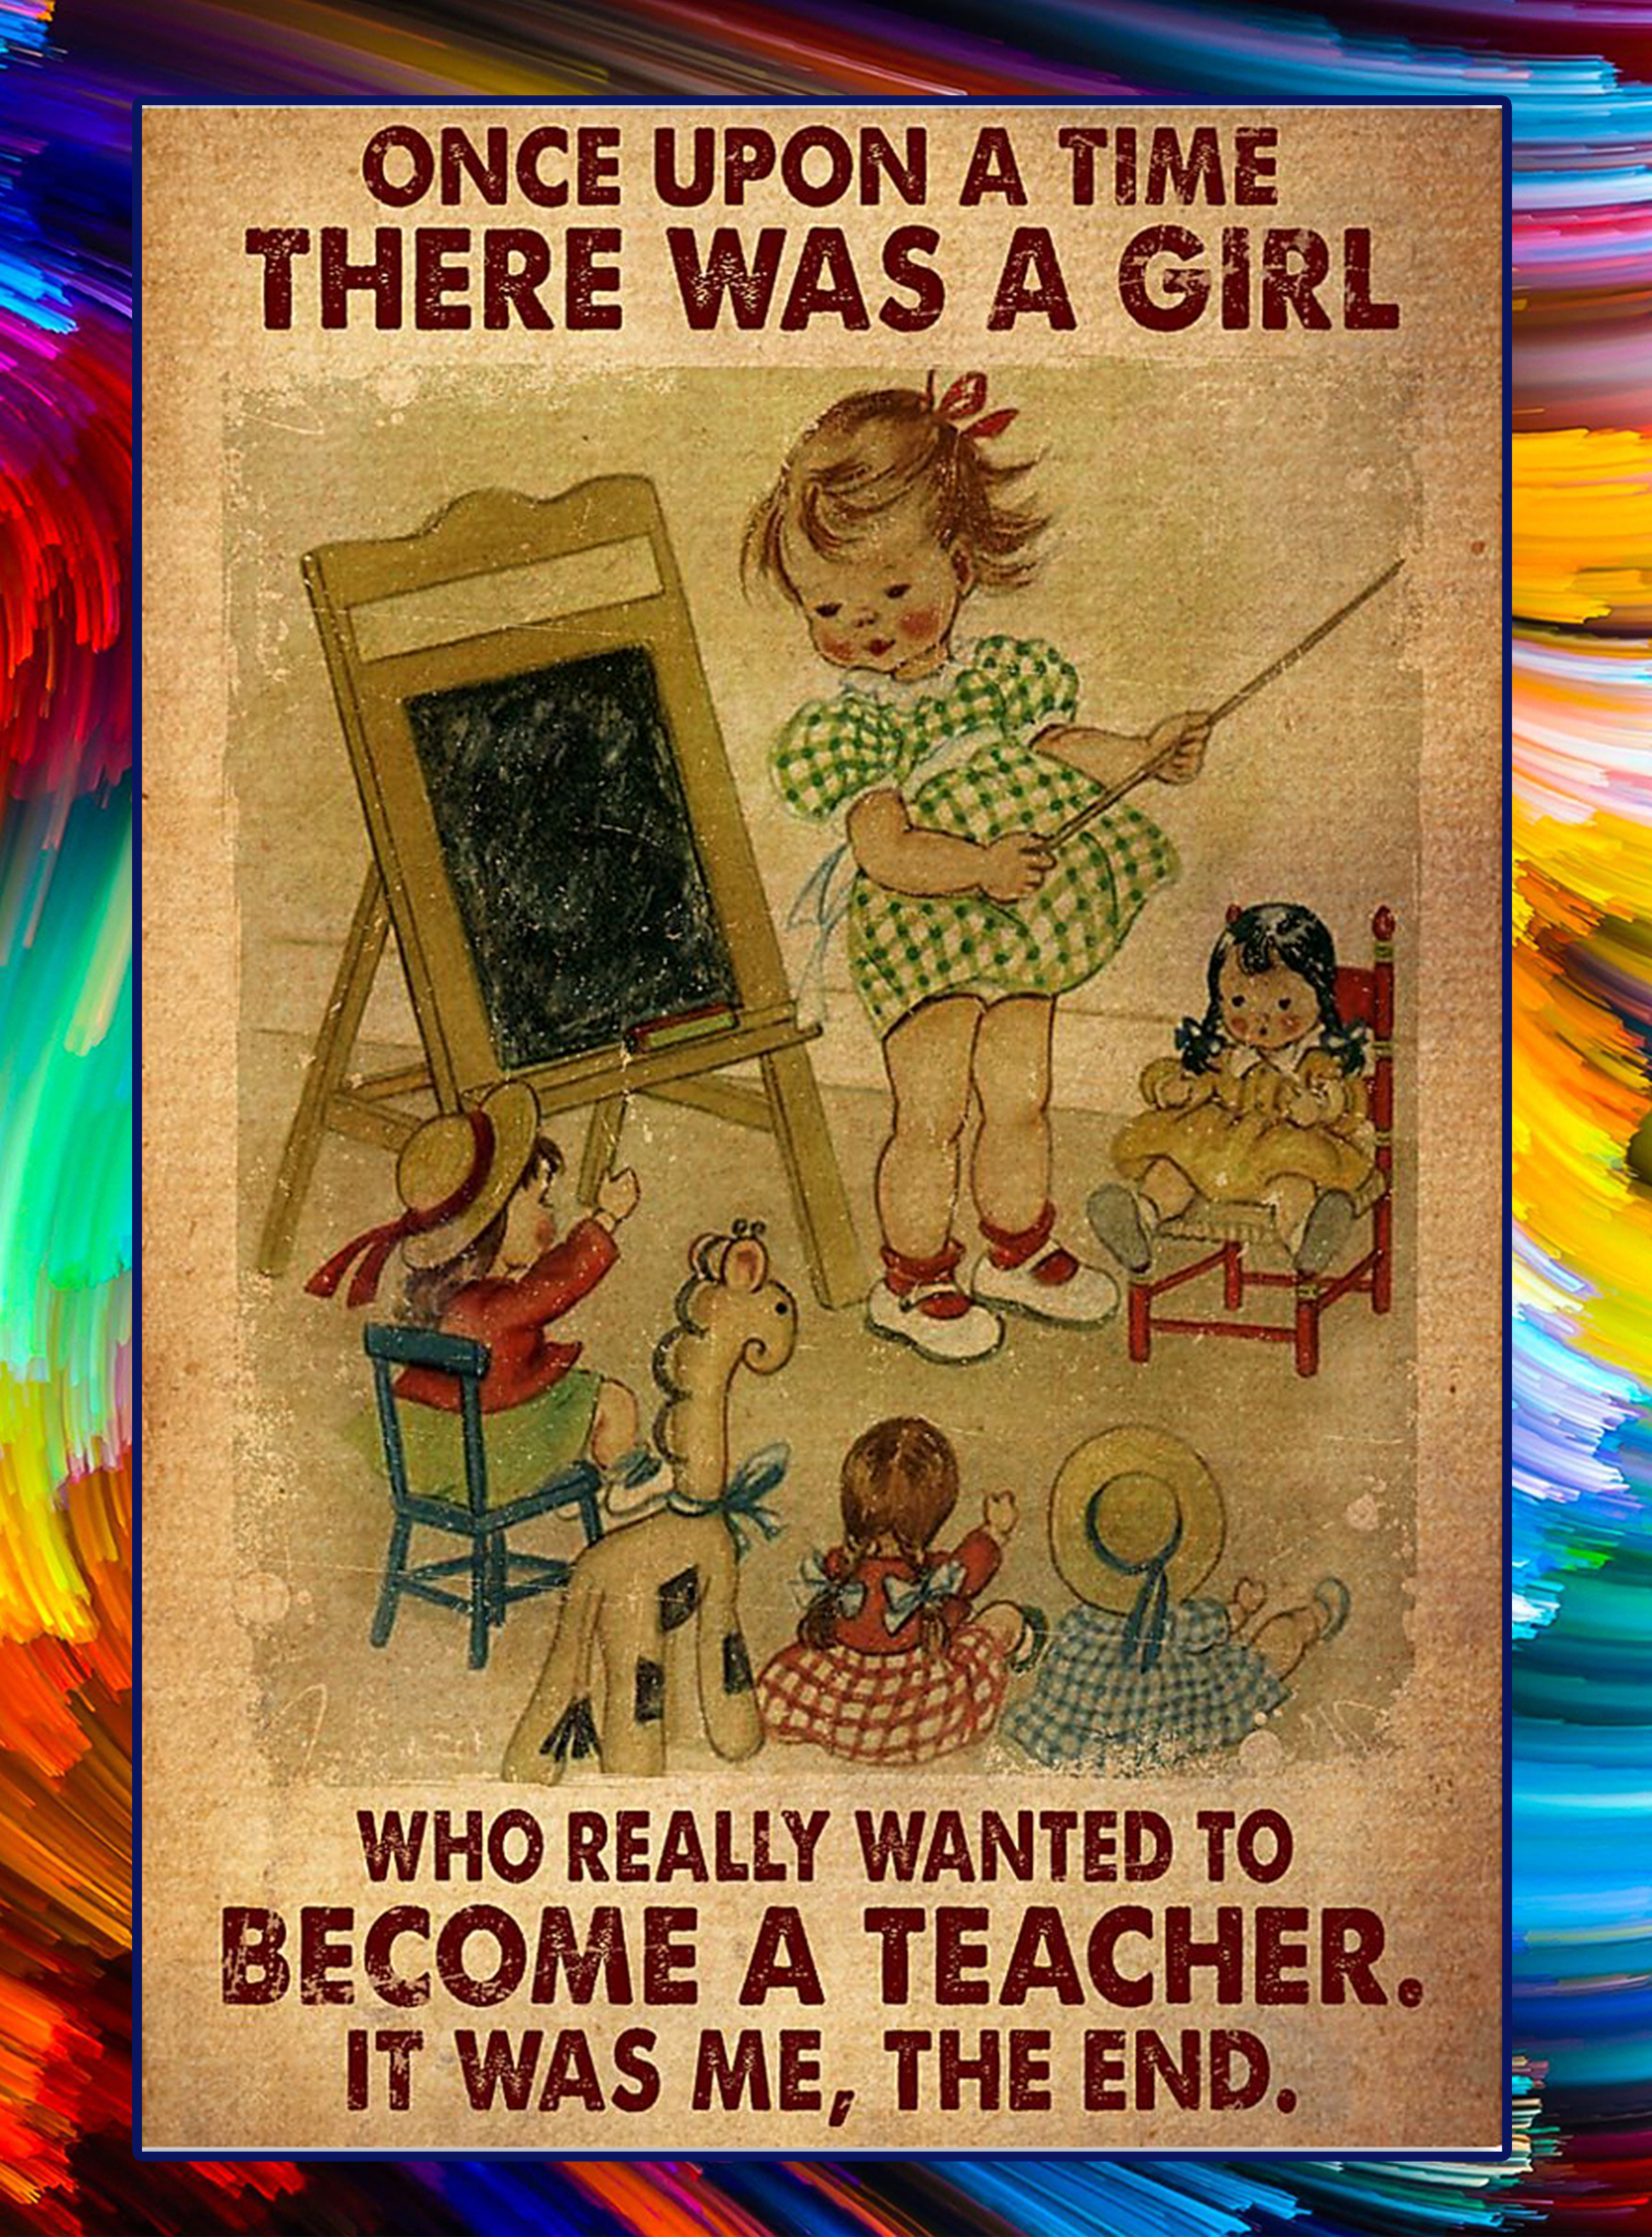 Once upon a time there was a girl wanted to become a teacher poster - A4